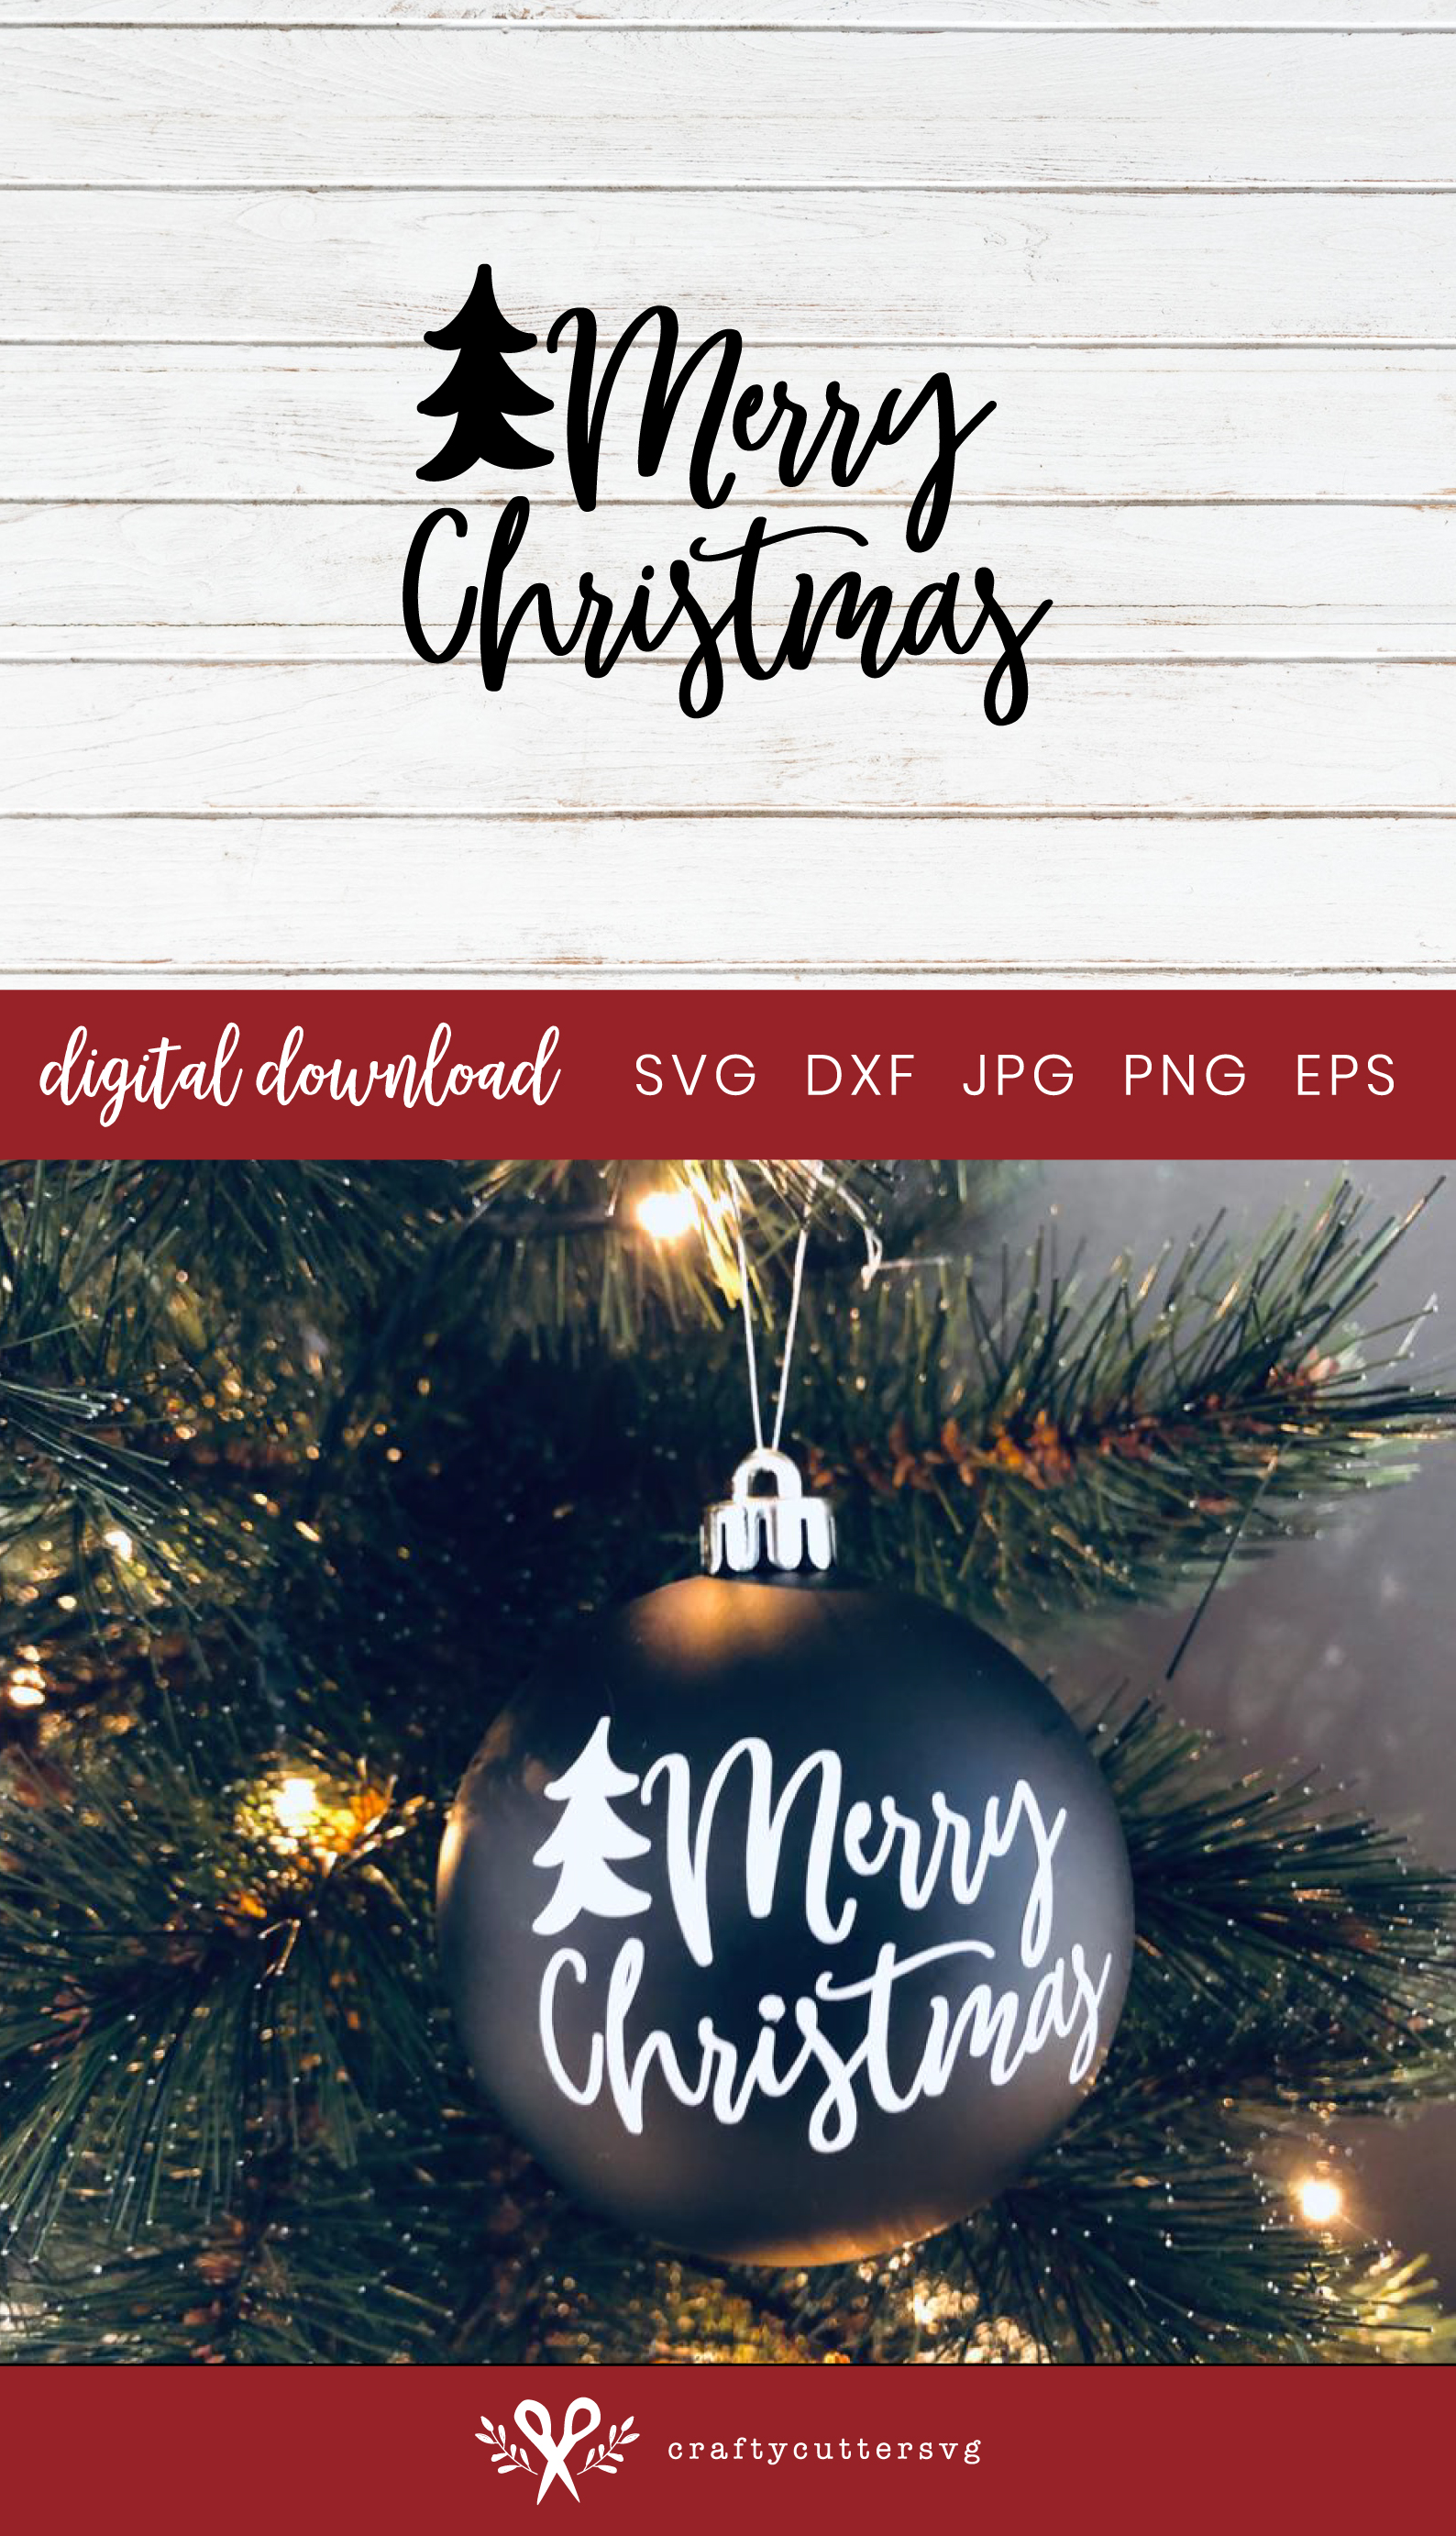 Christmas Ornaments Merry Christmas Tree Cut File example image 3